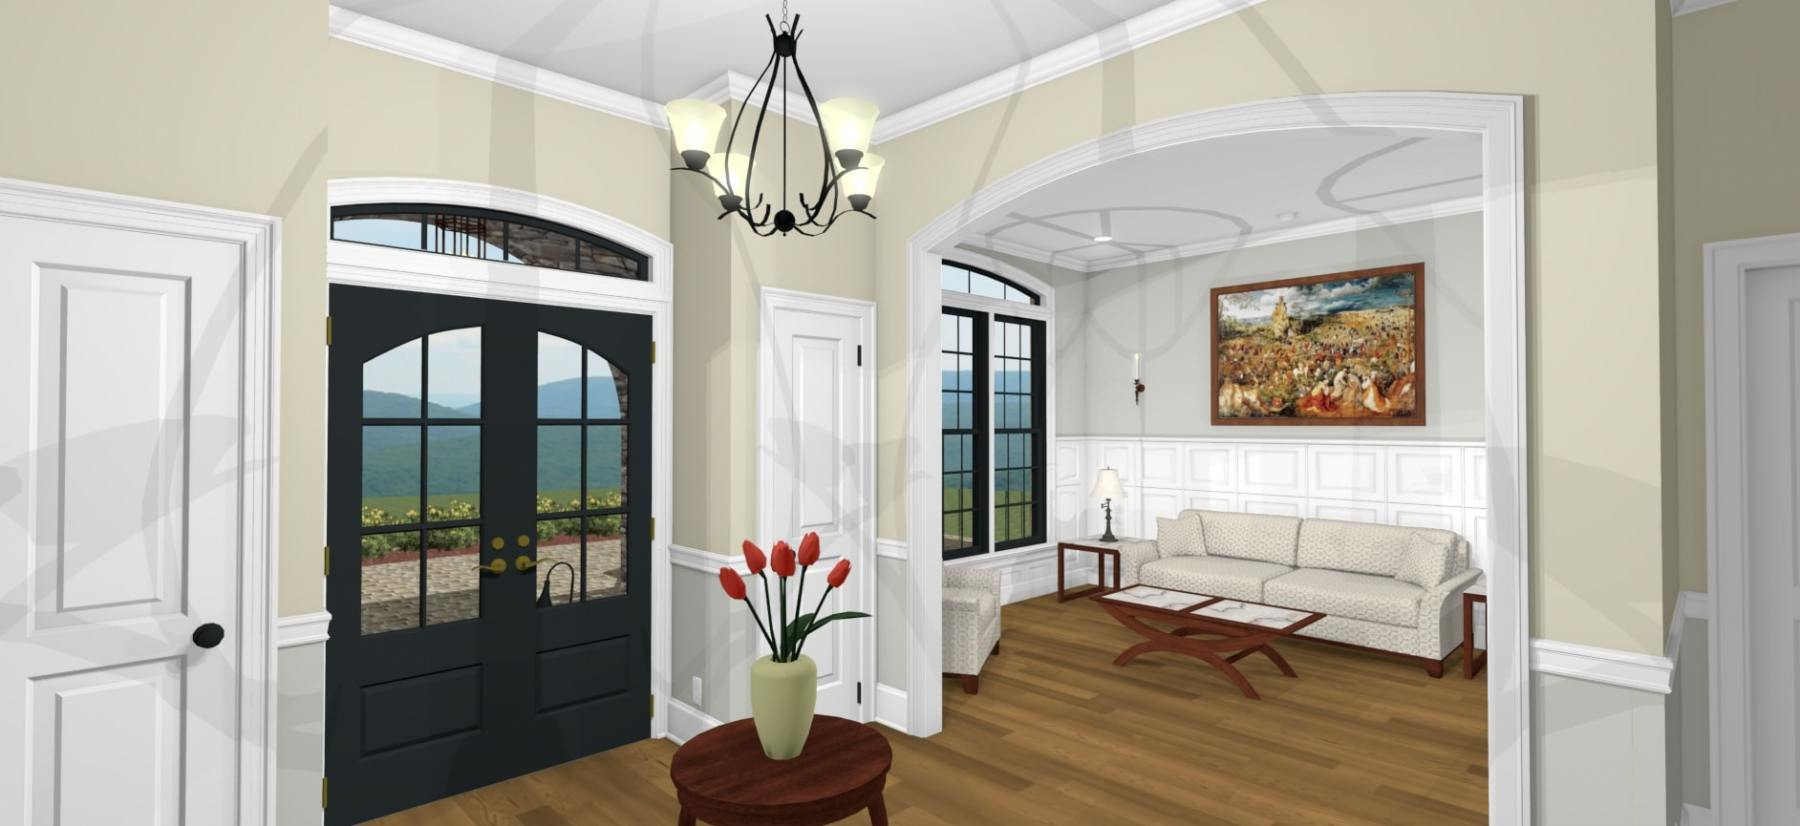 Spacious entryway with storage closets and a hanging chandelier.